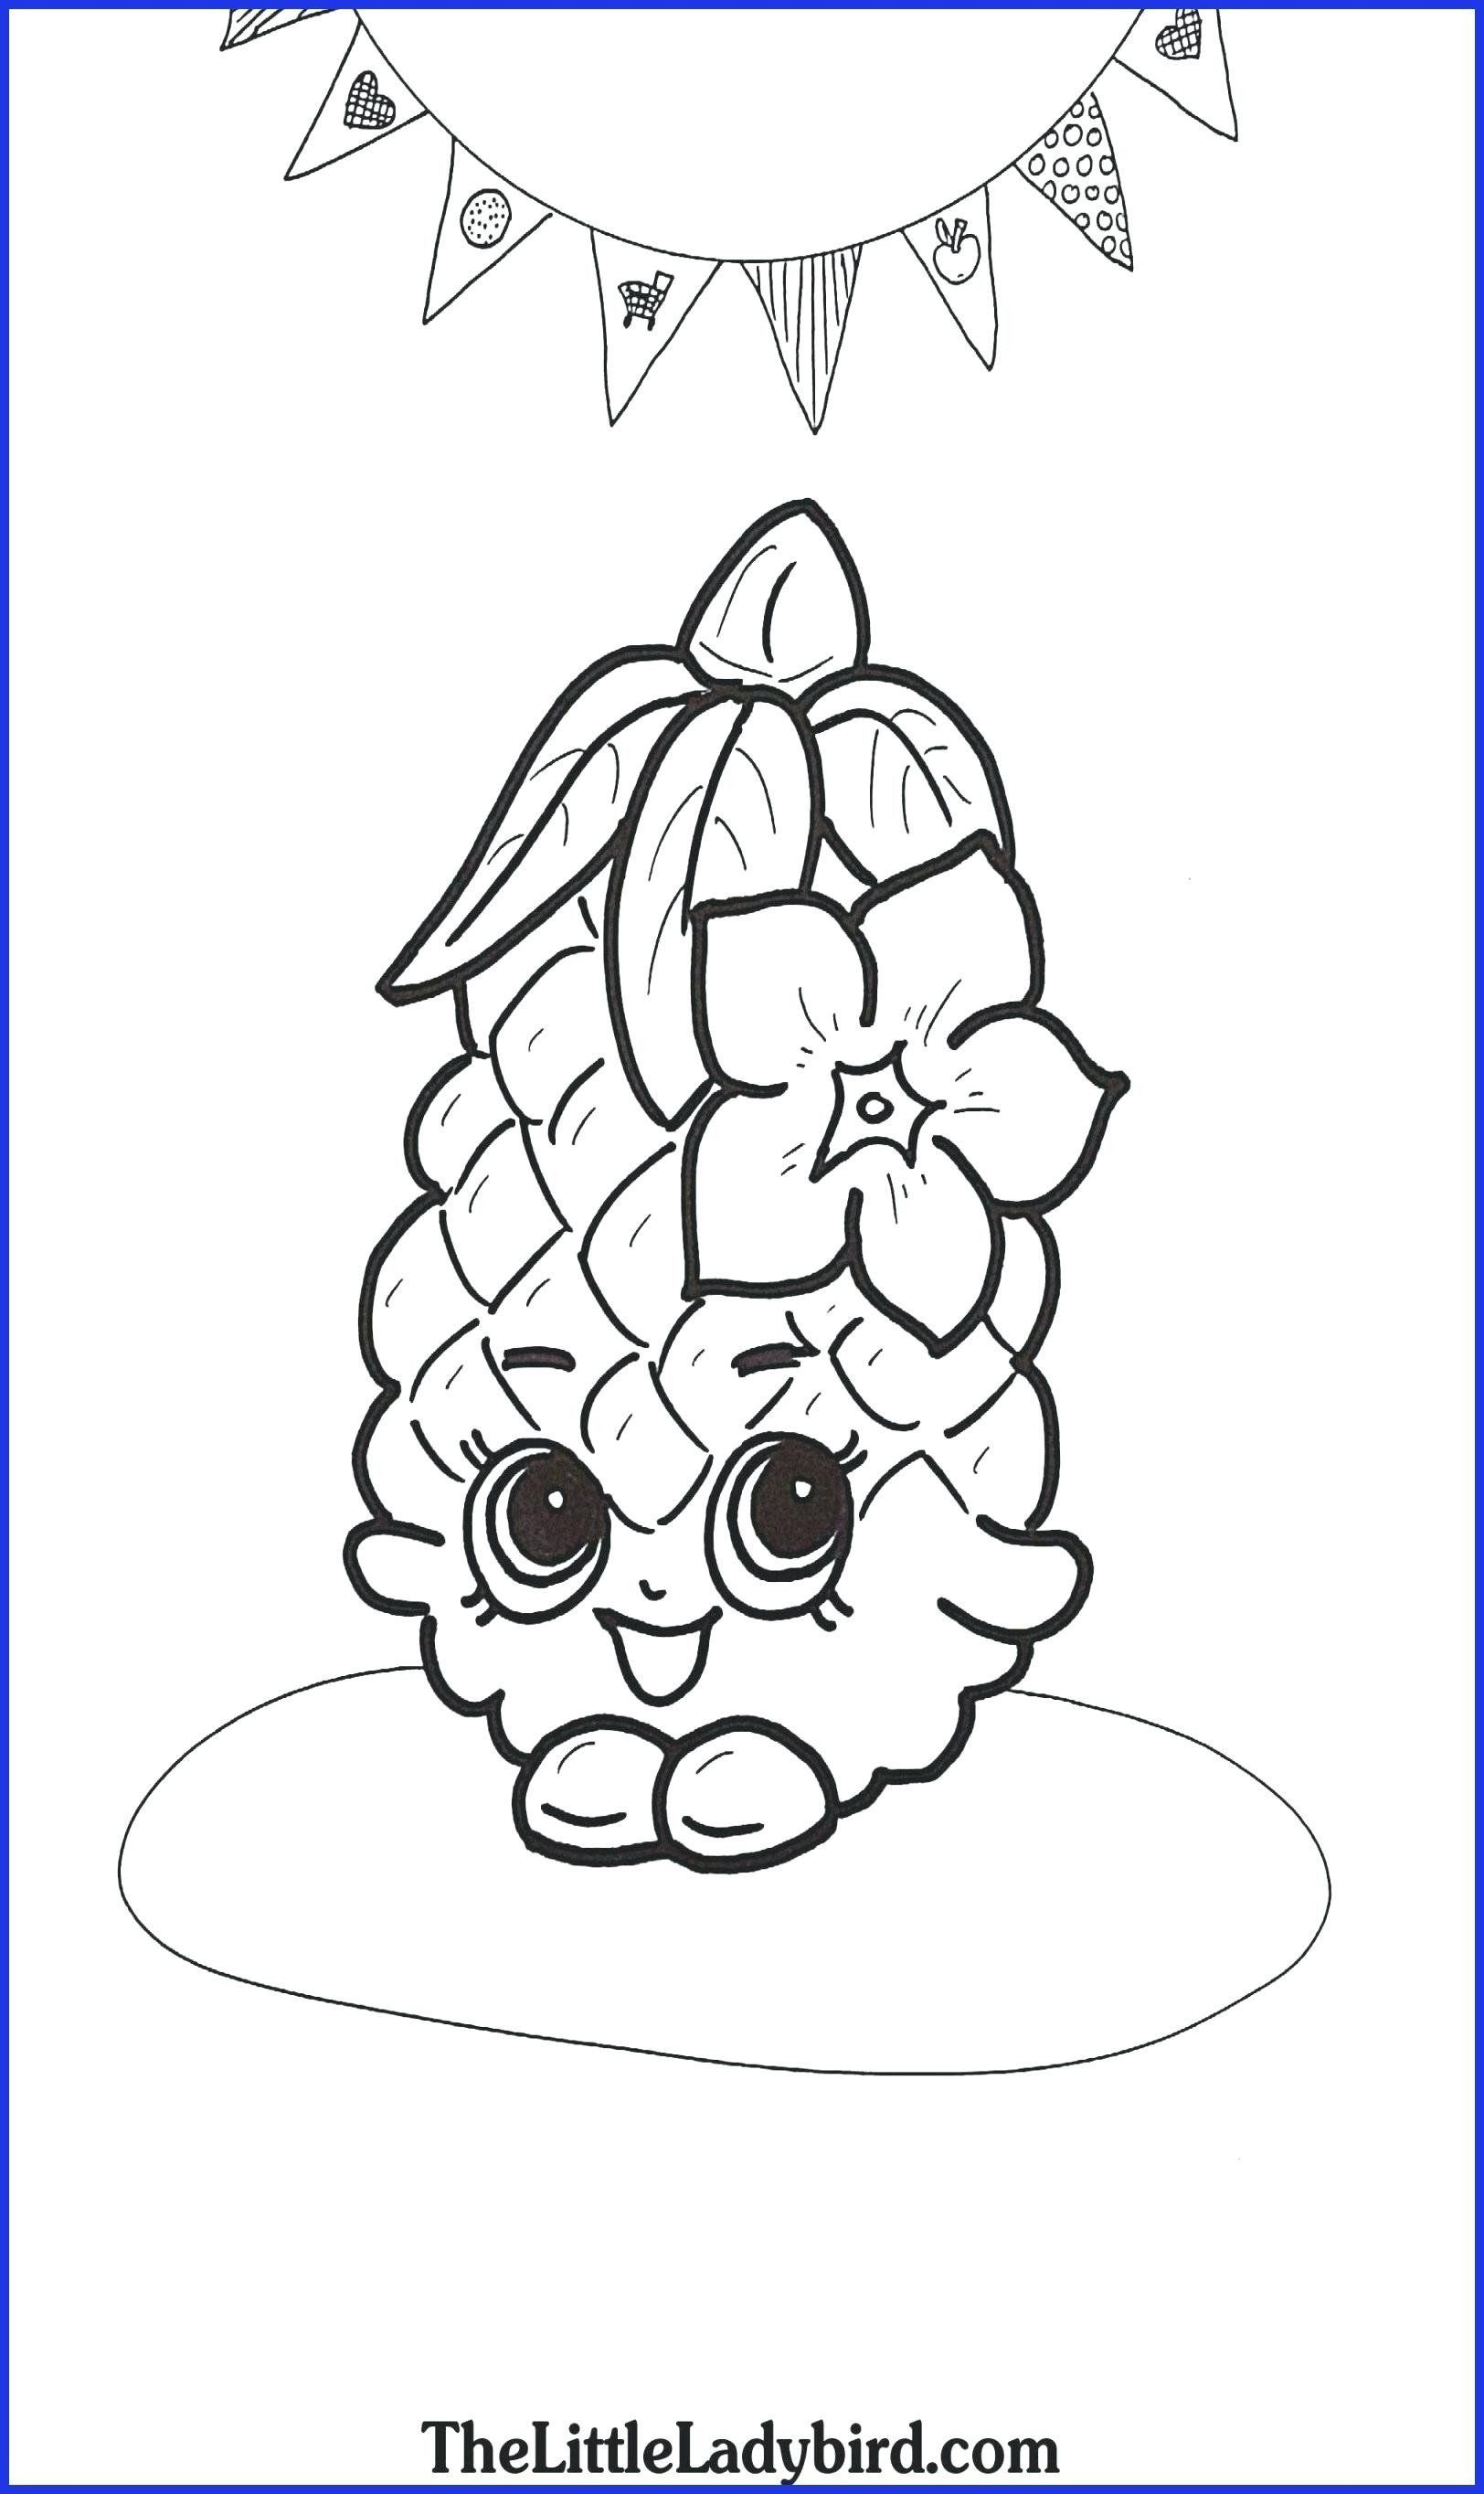 Nick Jr Coloring Pages Awesome Free Printable Harvest Coloring Pages Spartanprint In 2020 Valentine Coloring Pages Princess Coloring Pages Fall Coloring Pages